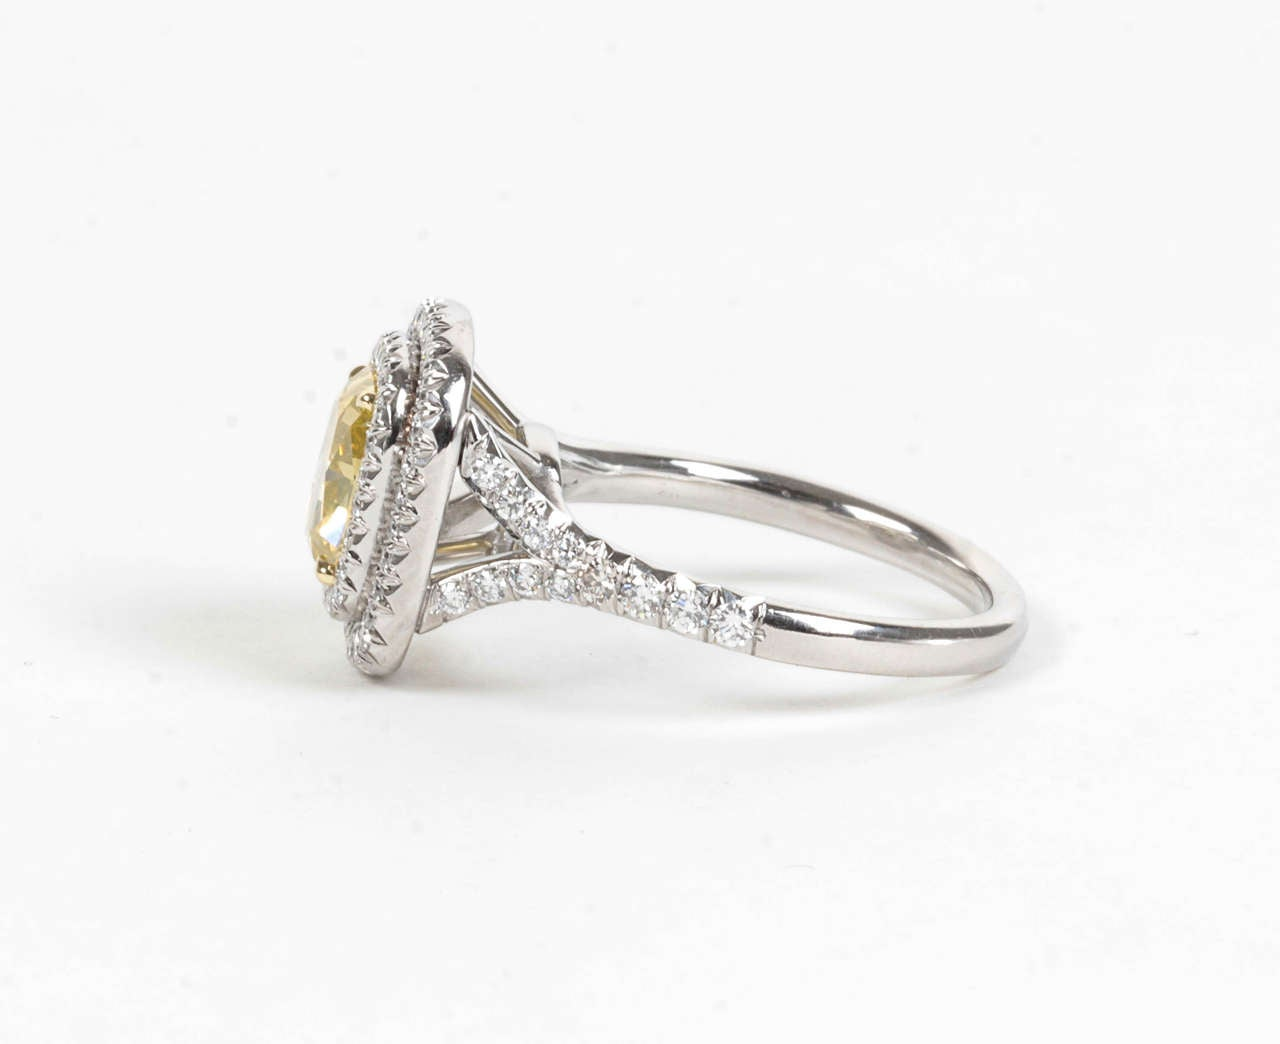 Rare Cushion Cut GIA Certified Vivid Yellow and White Diamond Platinum Ring For Sale 2